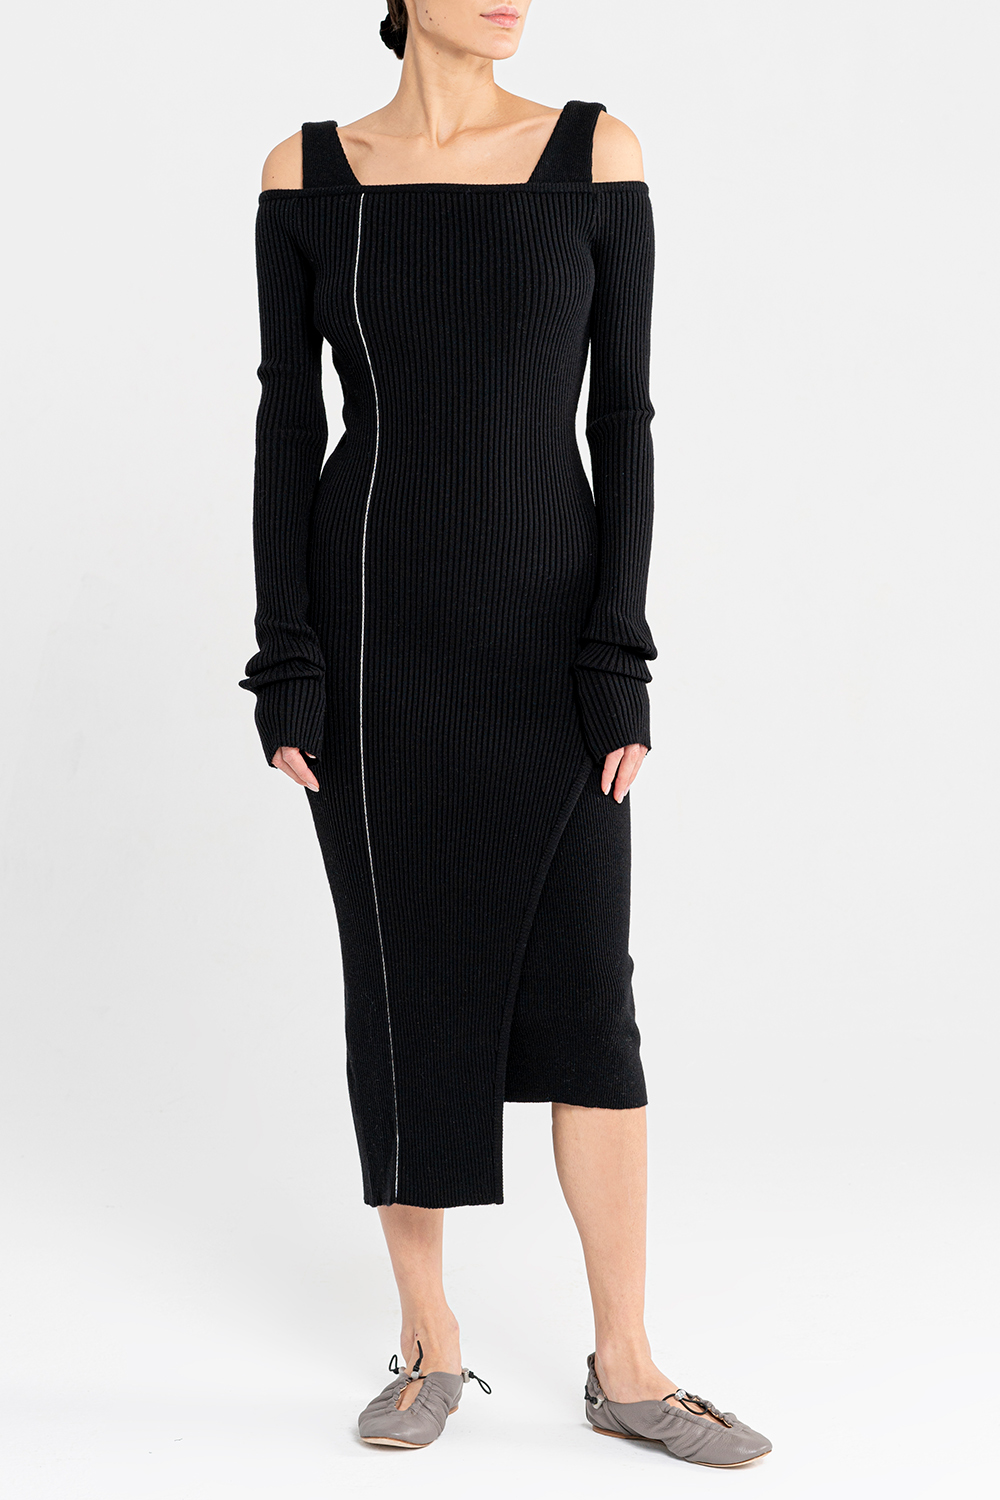 2-in-1 knitted dress